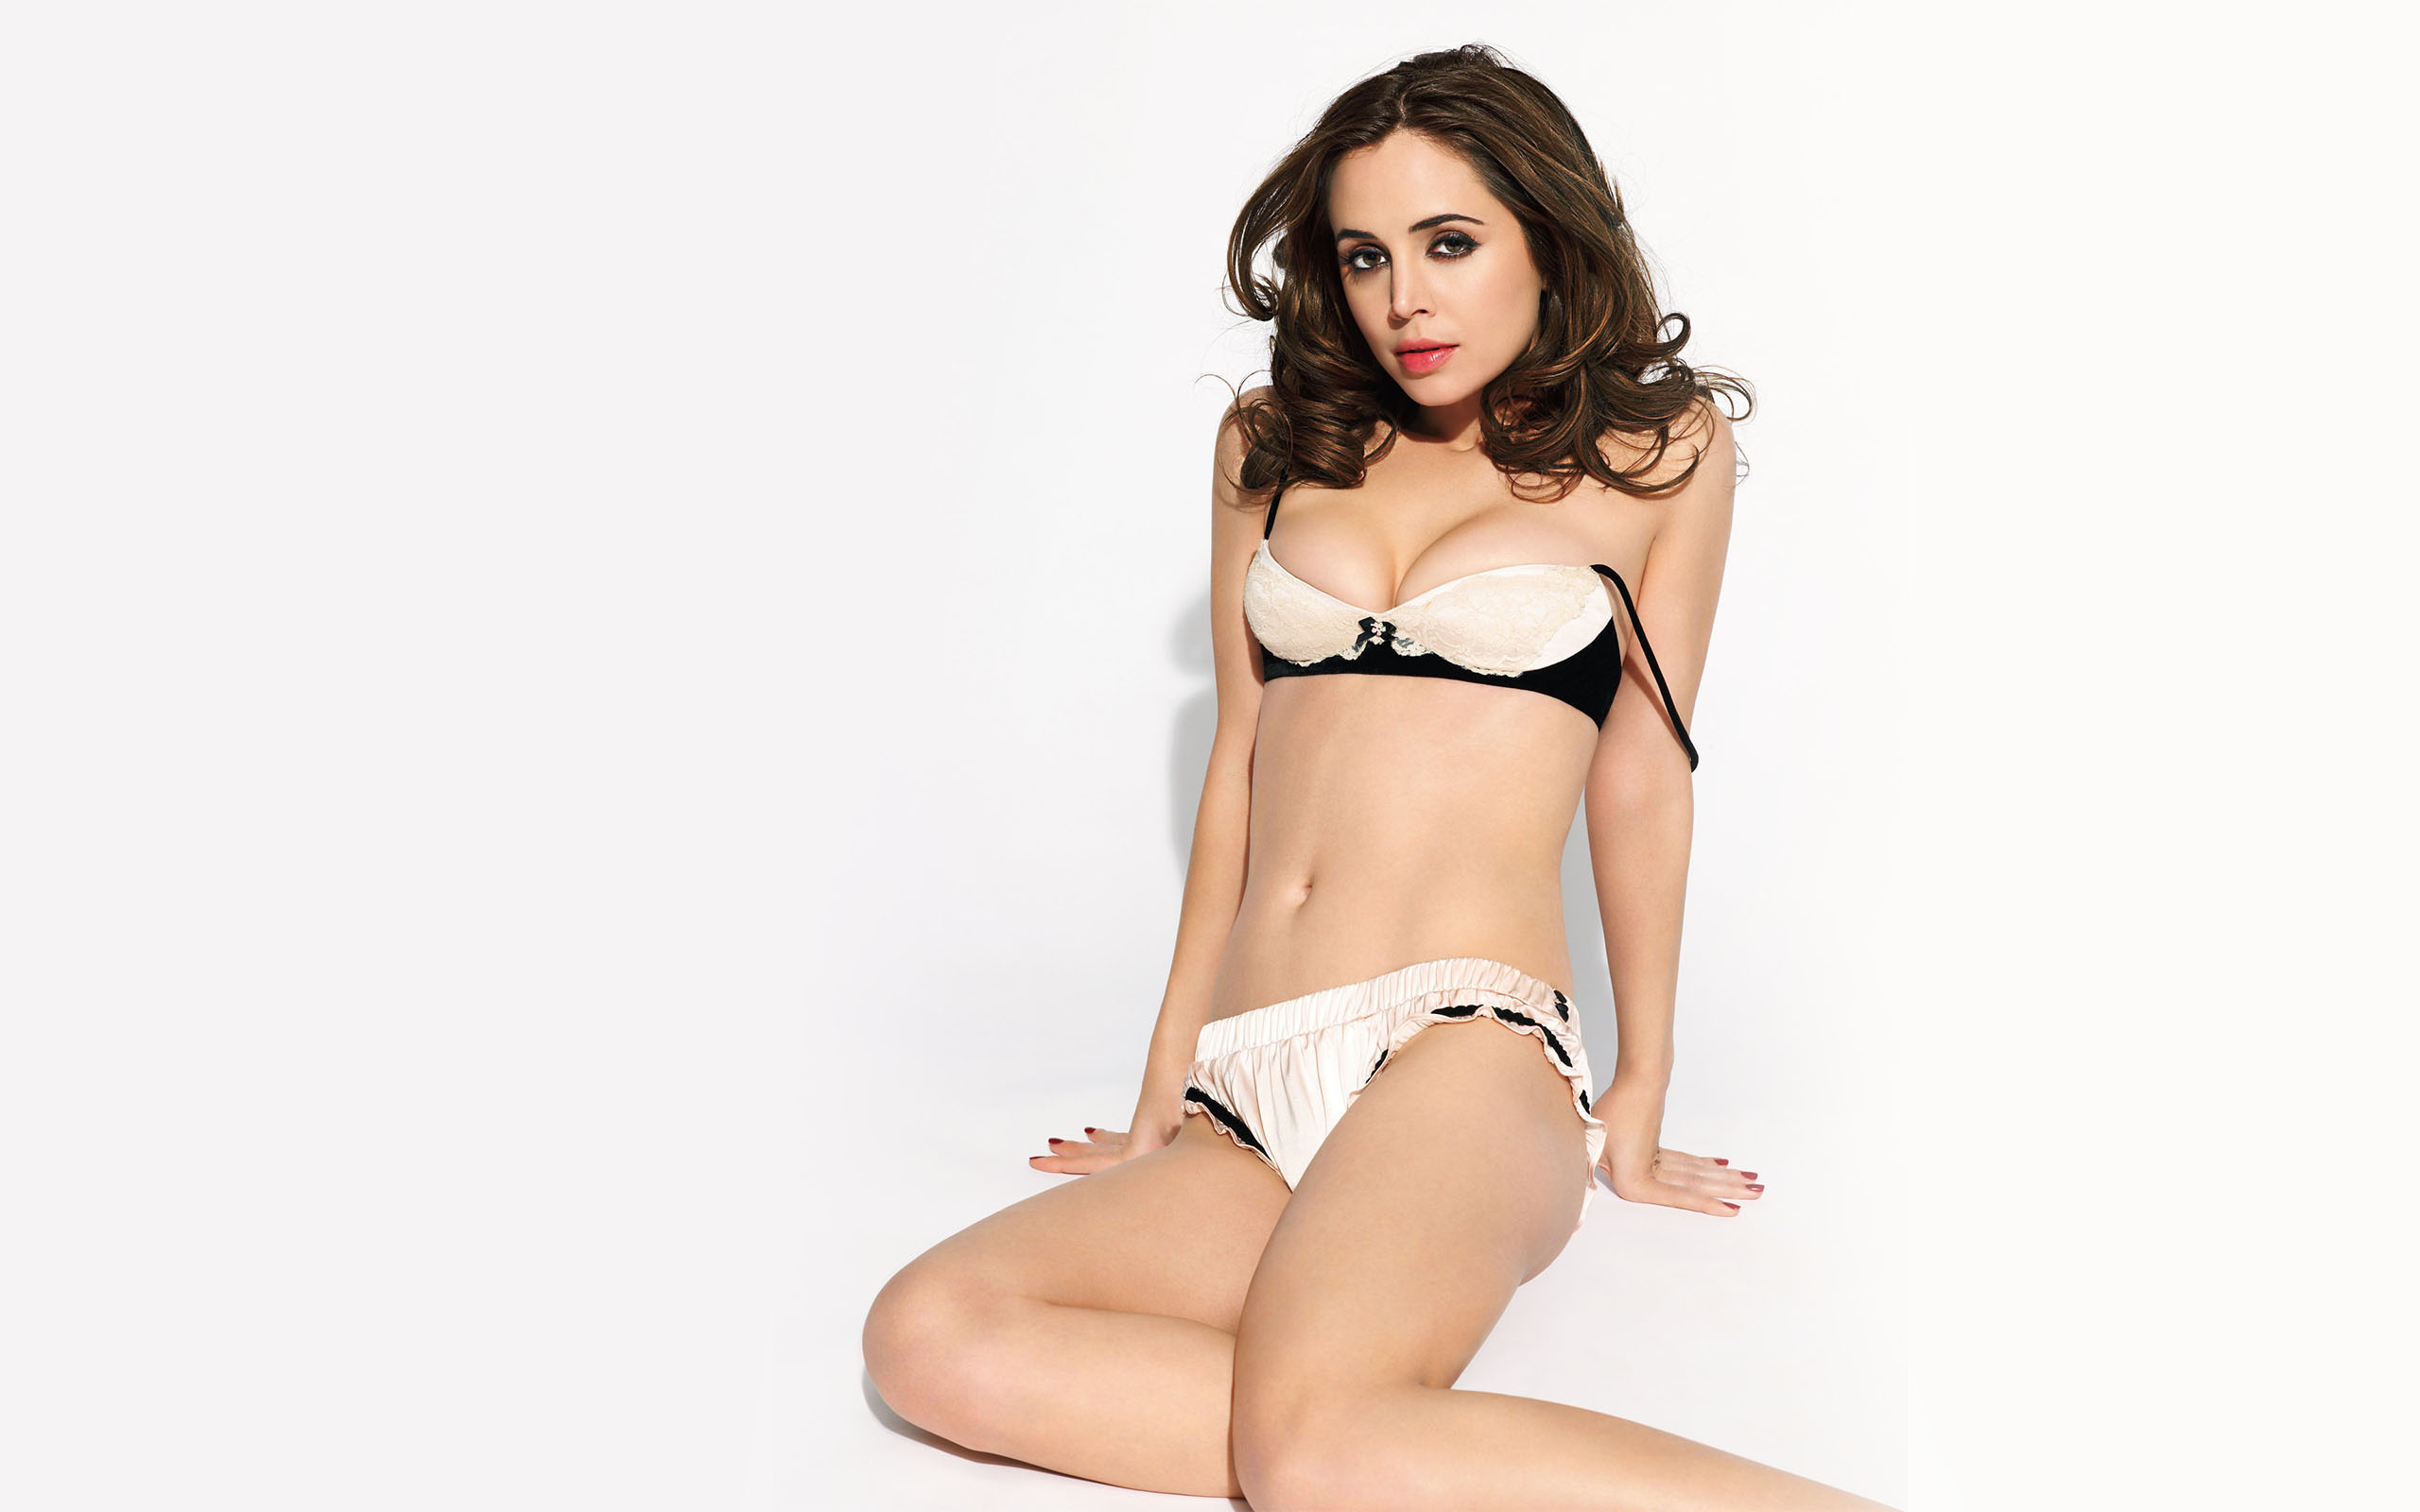 Eliza Dushku Hot Photos, Near-Nude Images & Videos